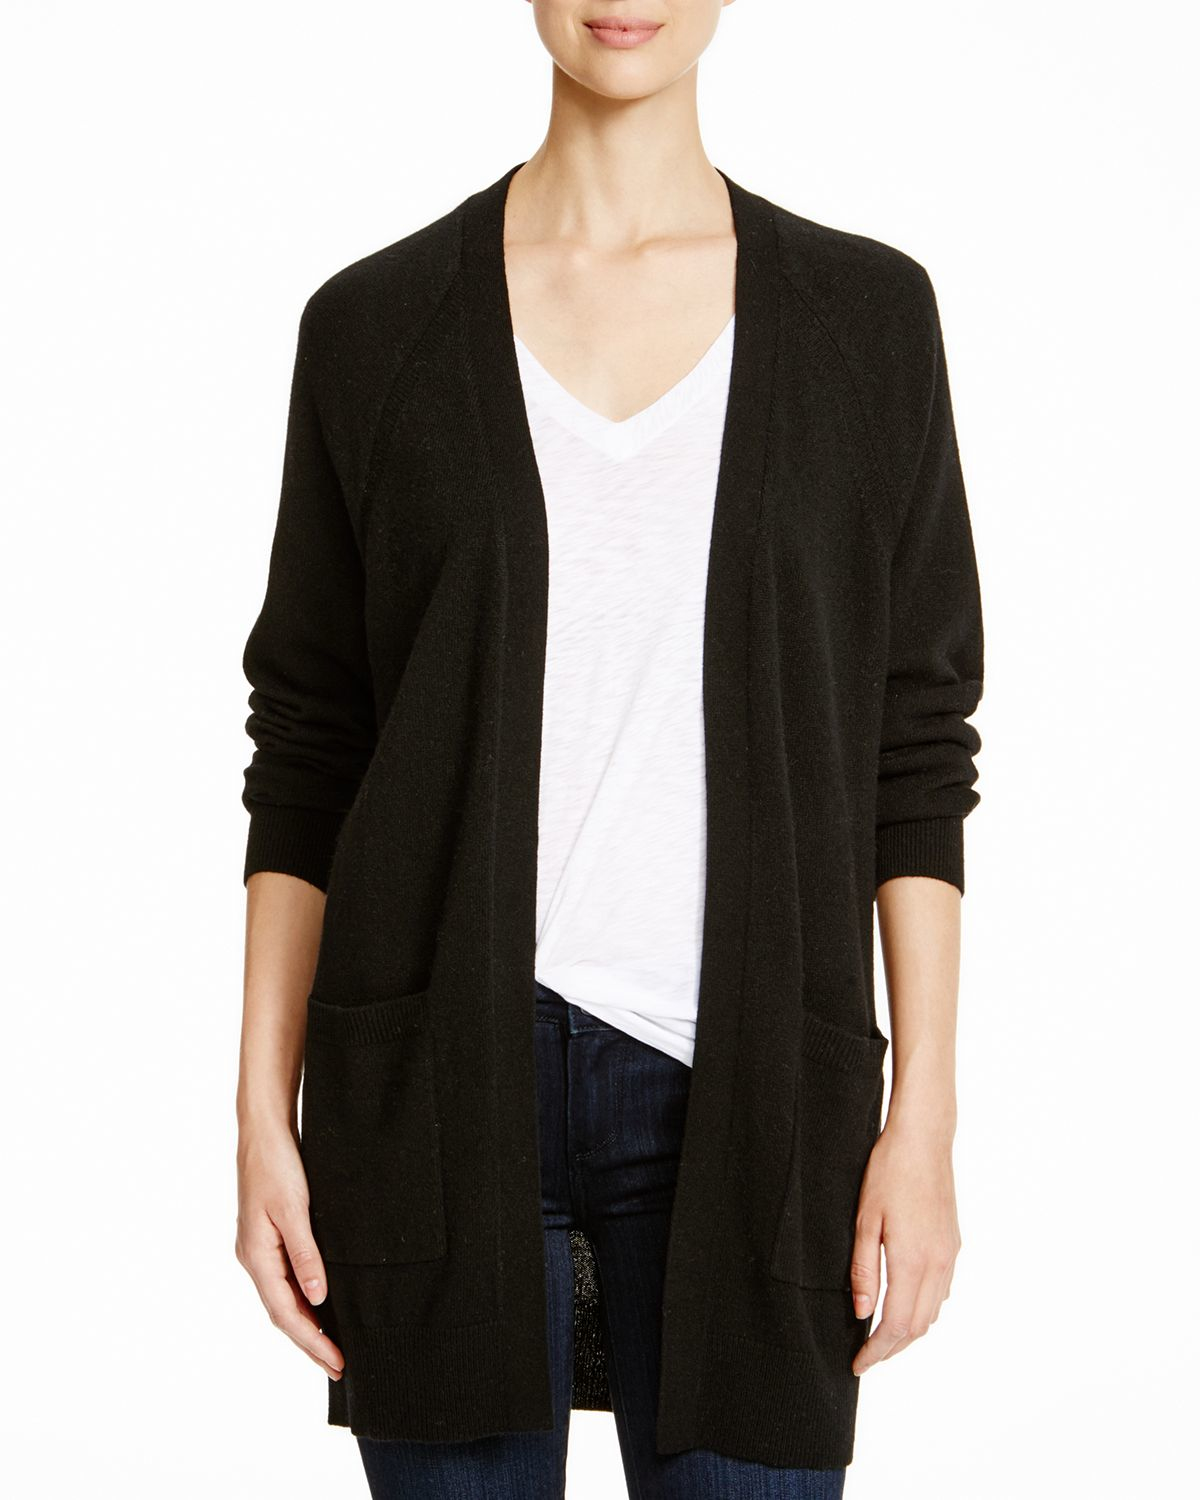 Black Cashmere Cardigan Sweater With Pockets 75